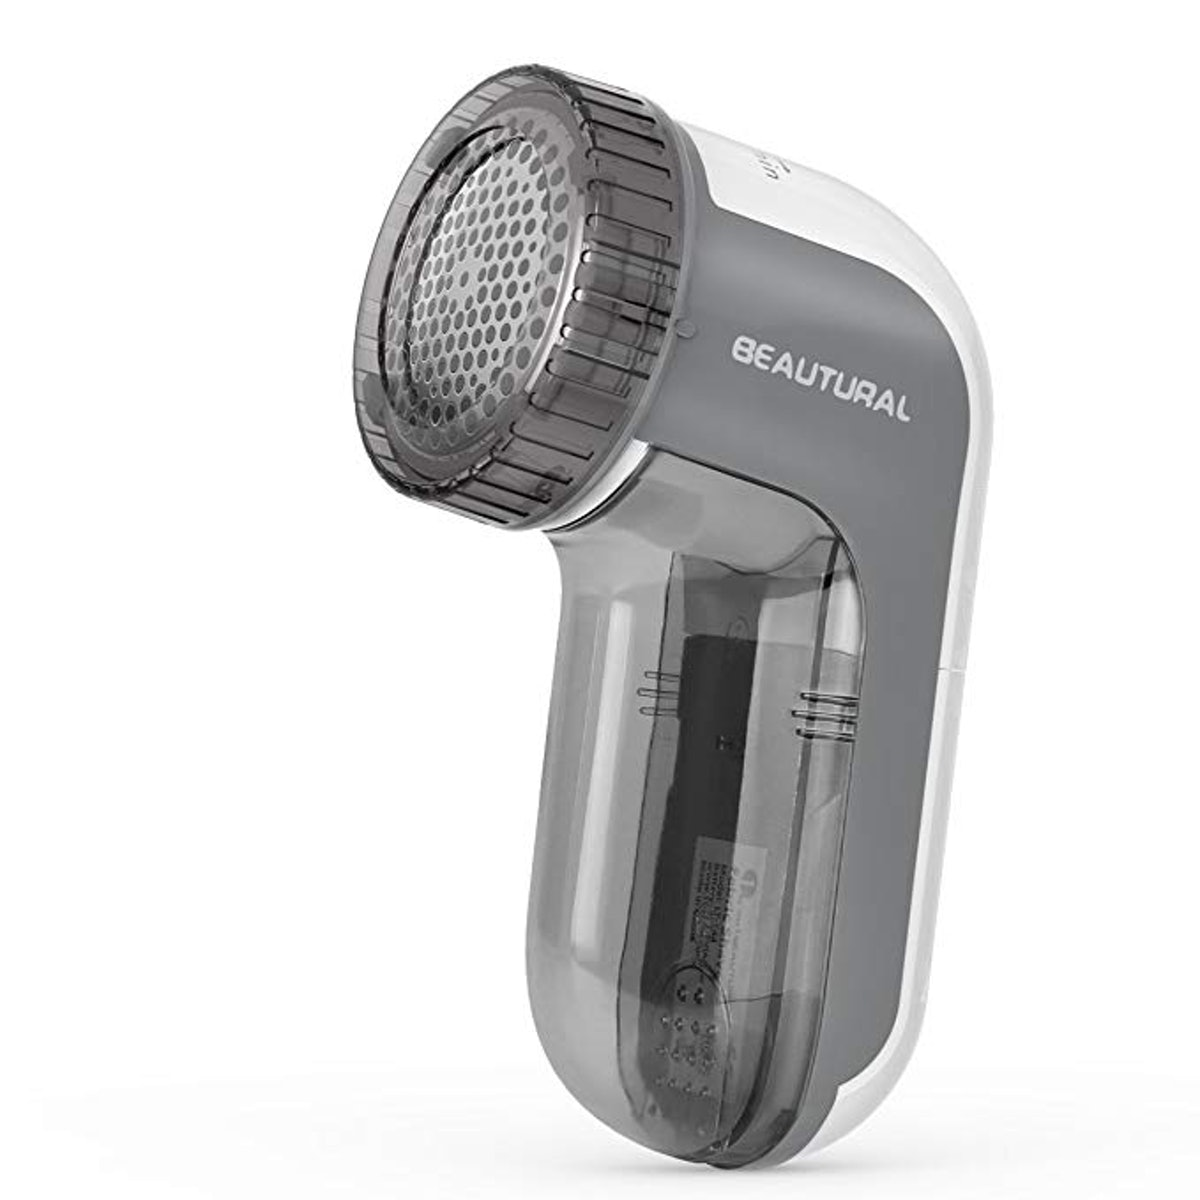 Beautural Portable Fabric Shaver and Lint Remover